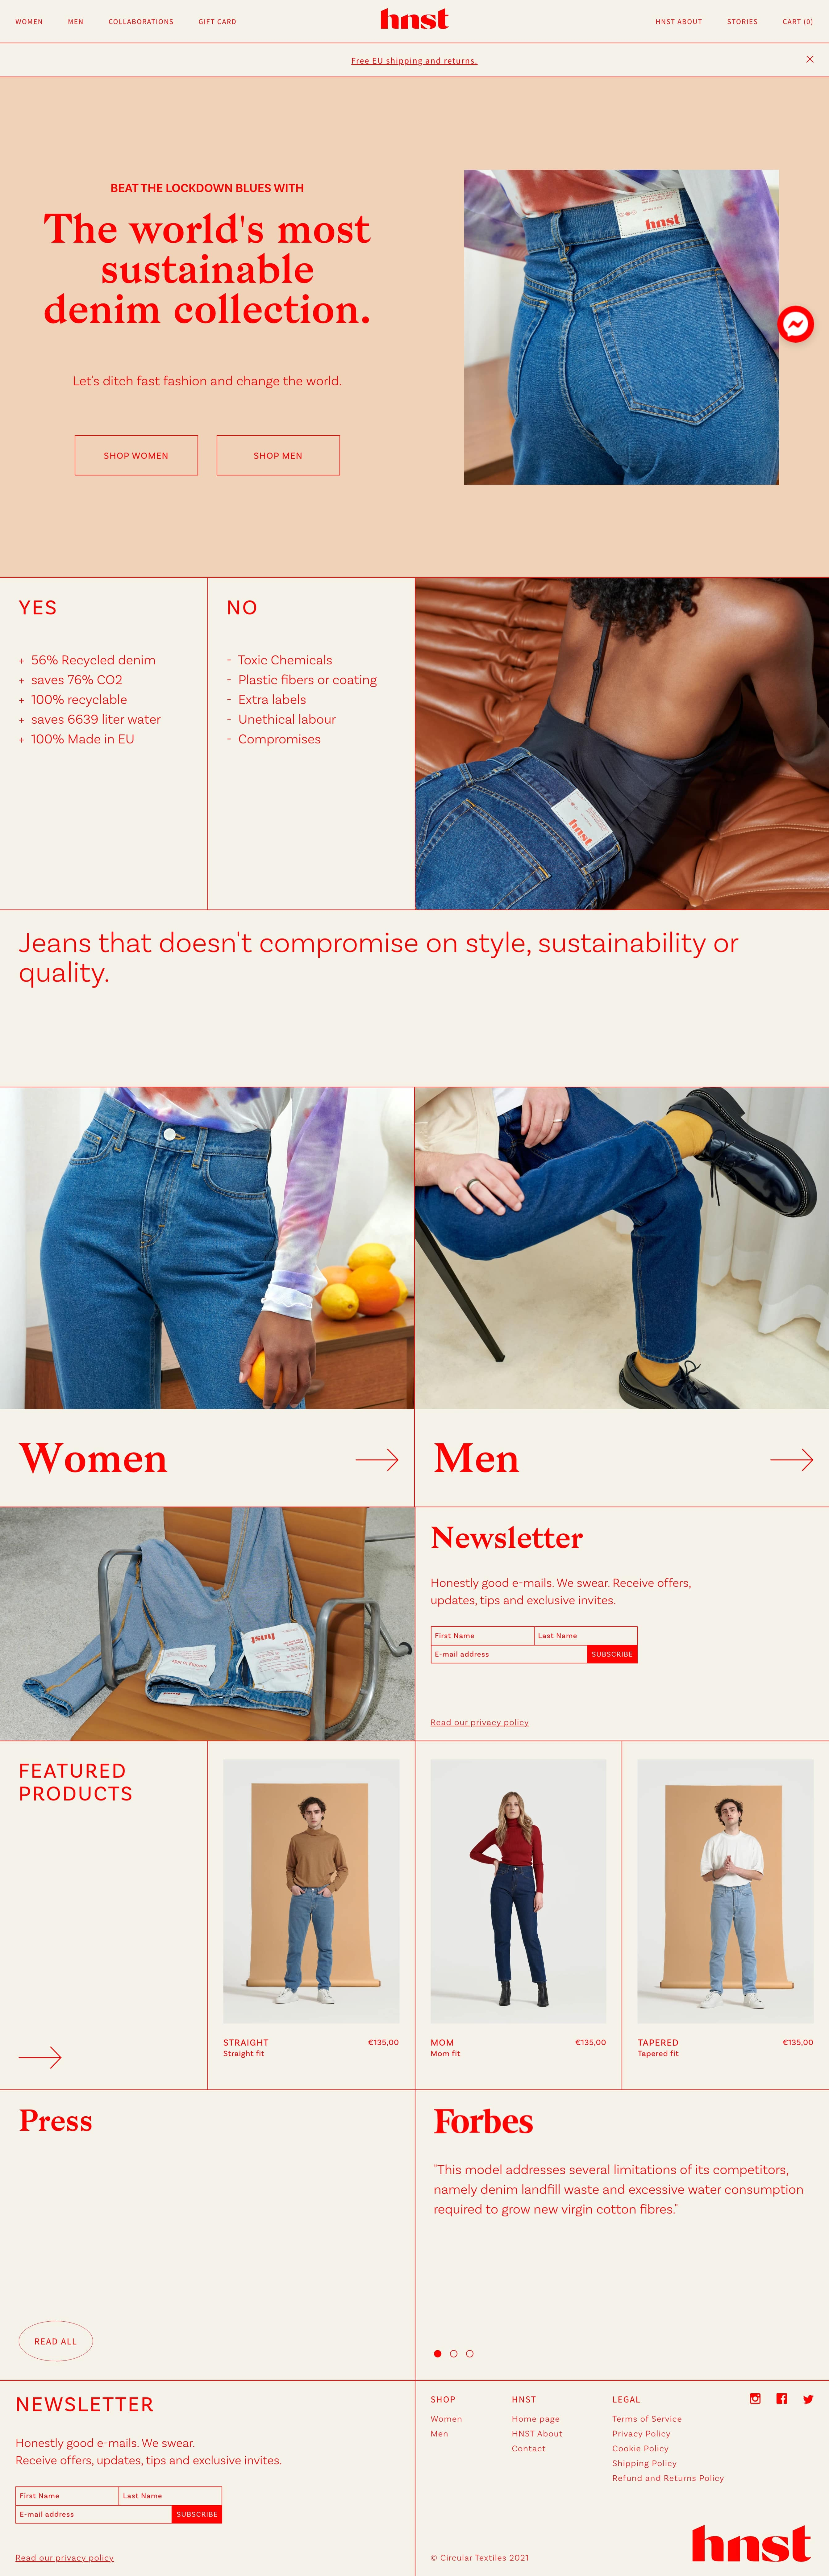 HNST Jeans ecommerce website homepage